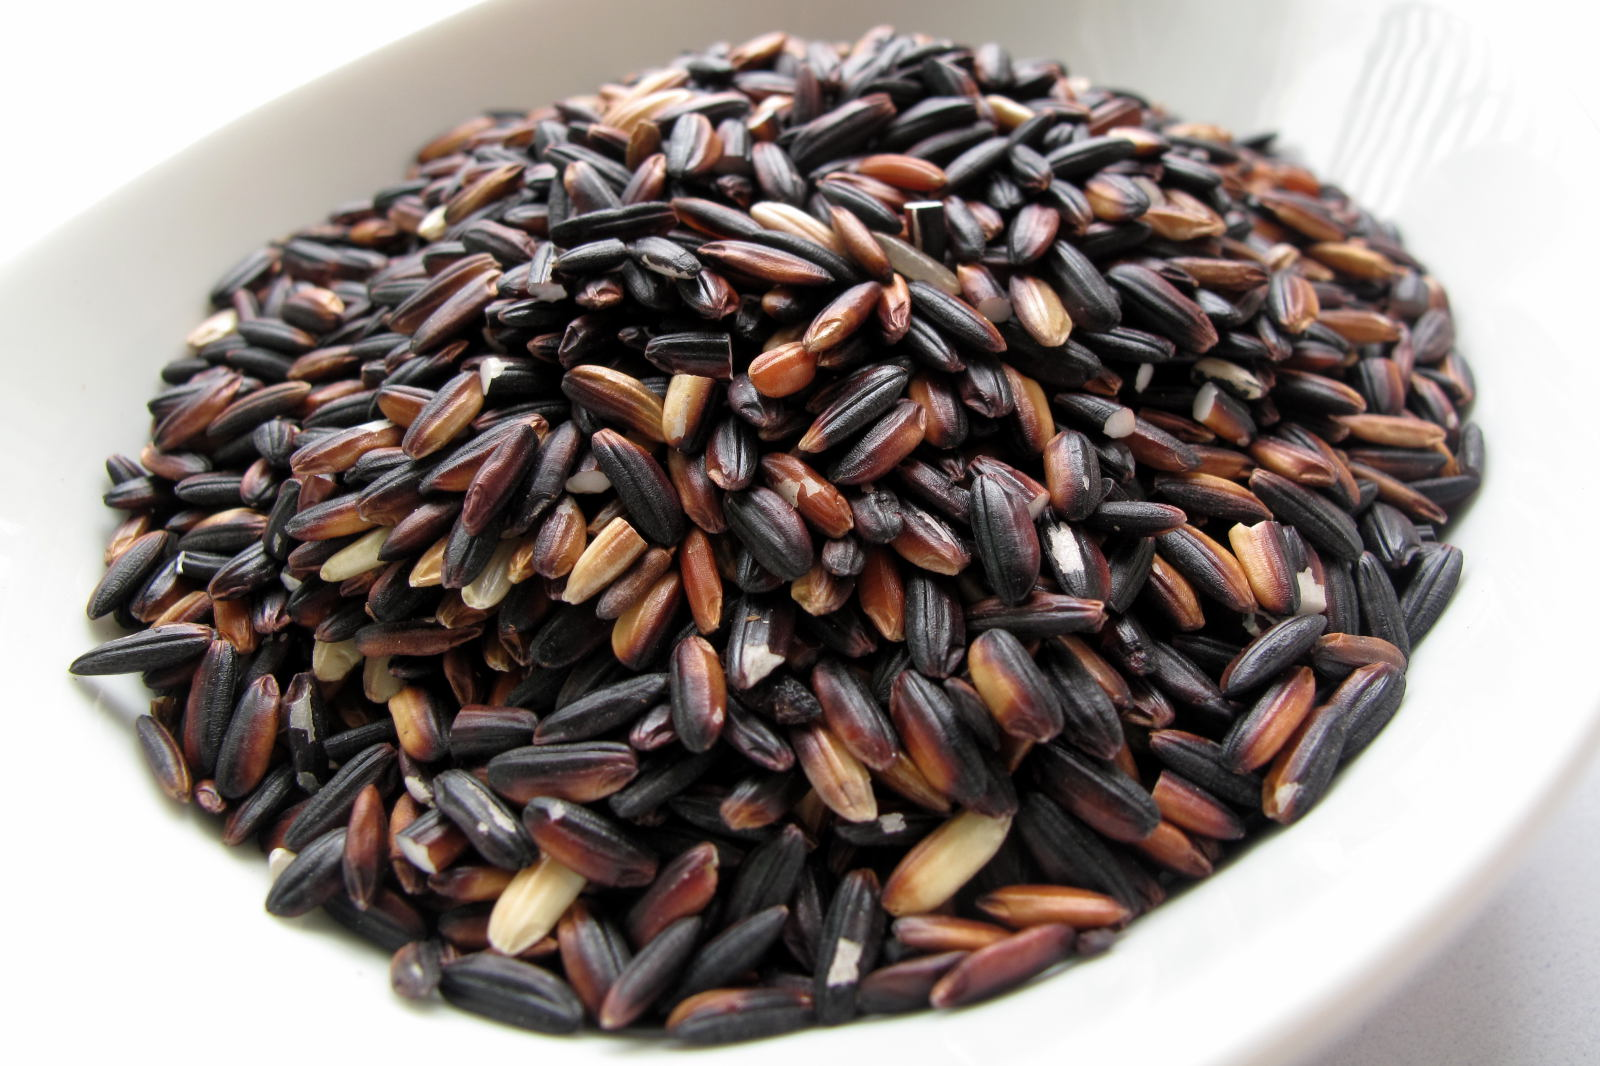 Uncooked black rice